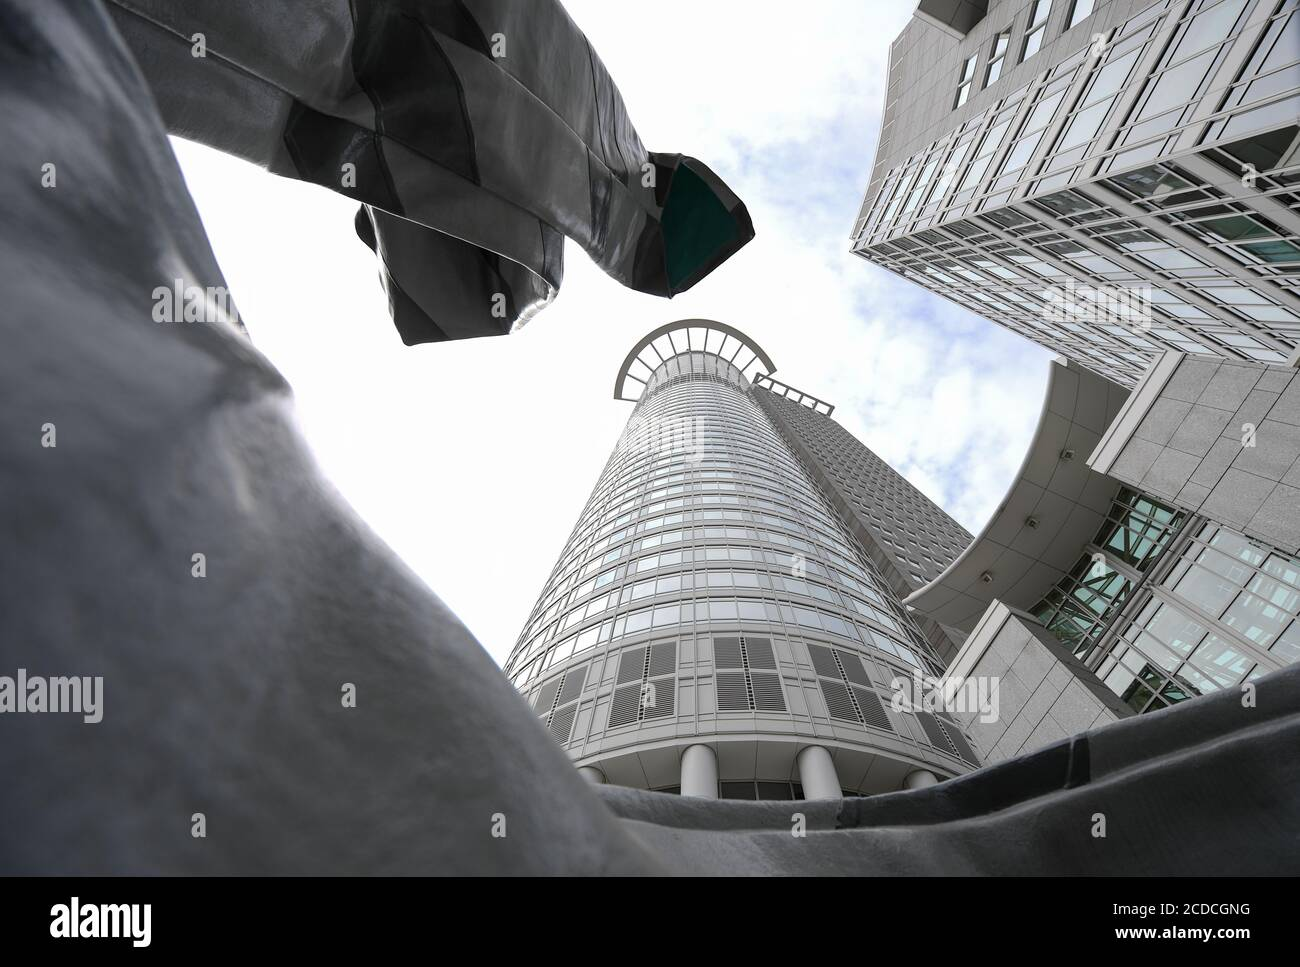 """25 August 2020, Hessen, Frankfurt/Main: The sculpture """"Inverted collar and tie"""" by the US-American Pop Art duo Claes Oldenburg and his wife Coosje van Bruggen stands in front of the office high-rise """"Westend 1"""", also known as the """"Kronenhochhaus"""", which belongs to the headquarters of the DZ Bank. The Deutsche Zentral-Genossenschaftsbank (DZ Bank) presents figures for the first half of 2020 on 28.08.2020. Photo: Arne Dedert/dpa Stock Photo"""